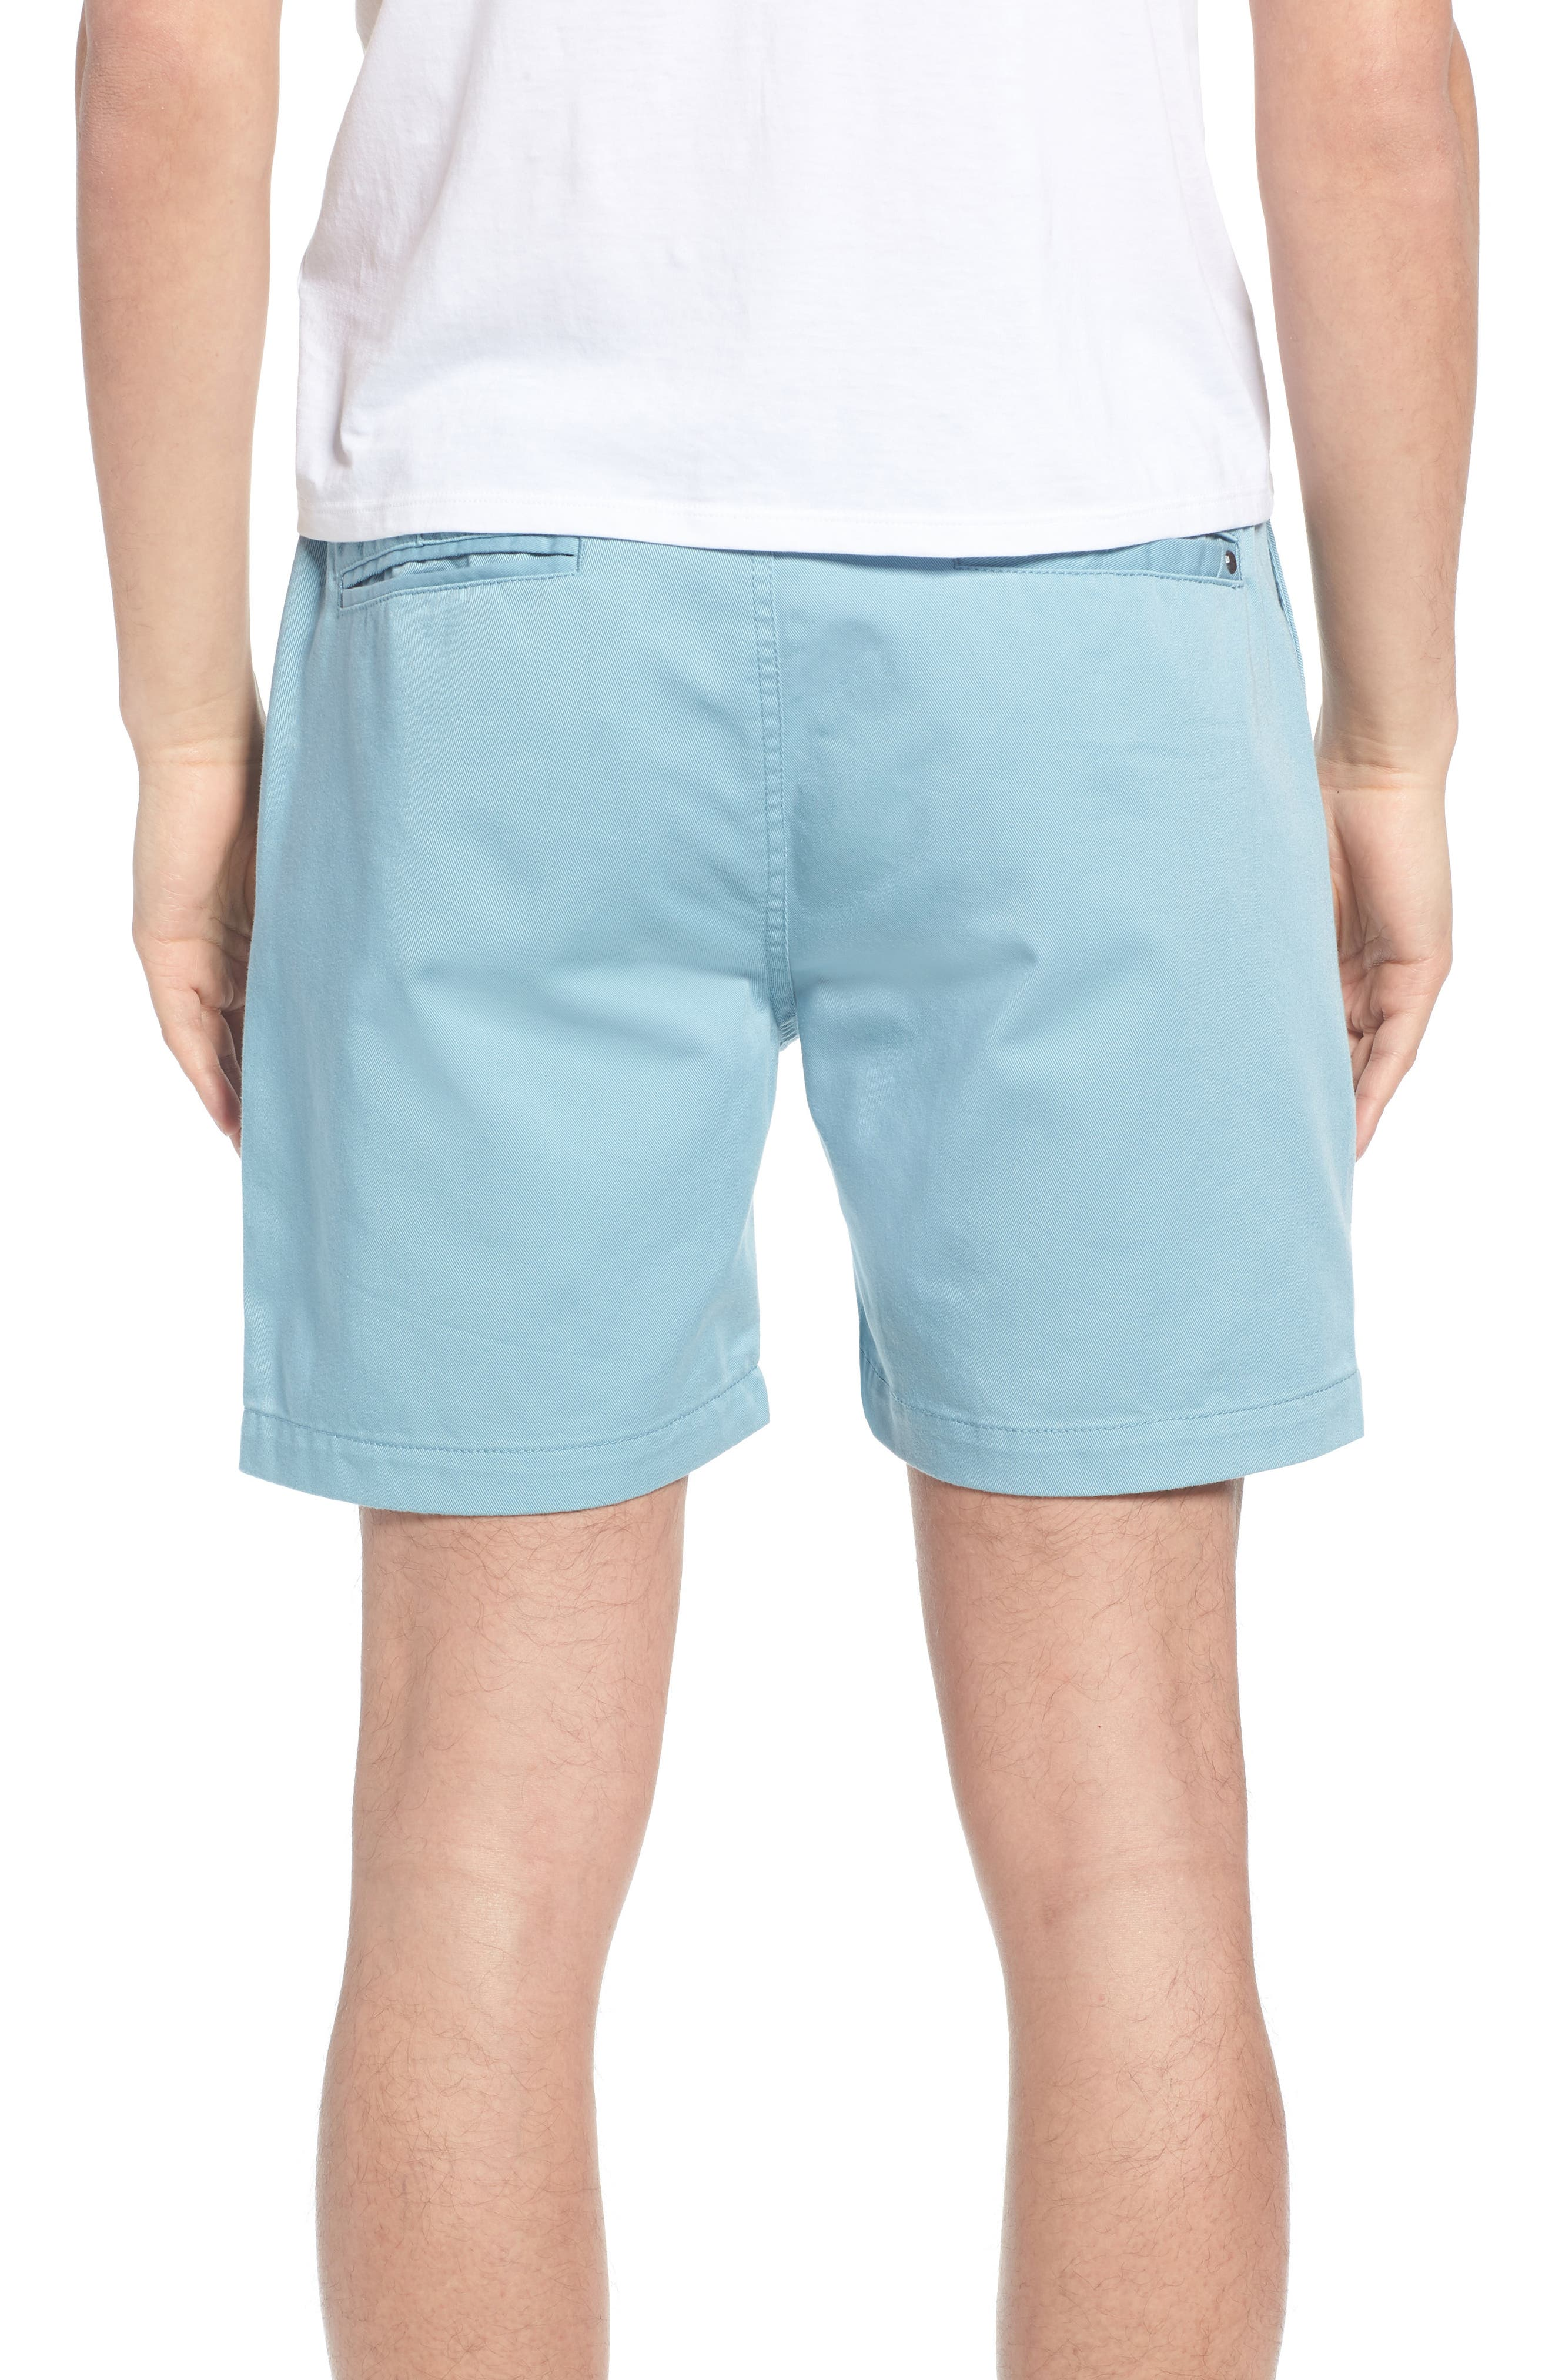 Seeker Shorts,                             Alternate thumbnail 2, color,                             Light Blue